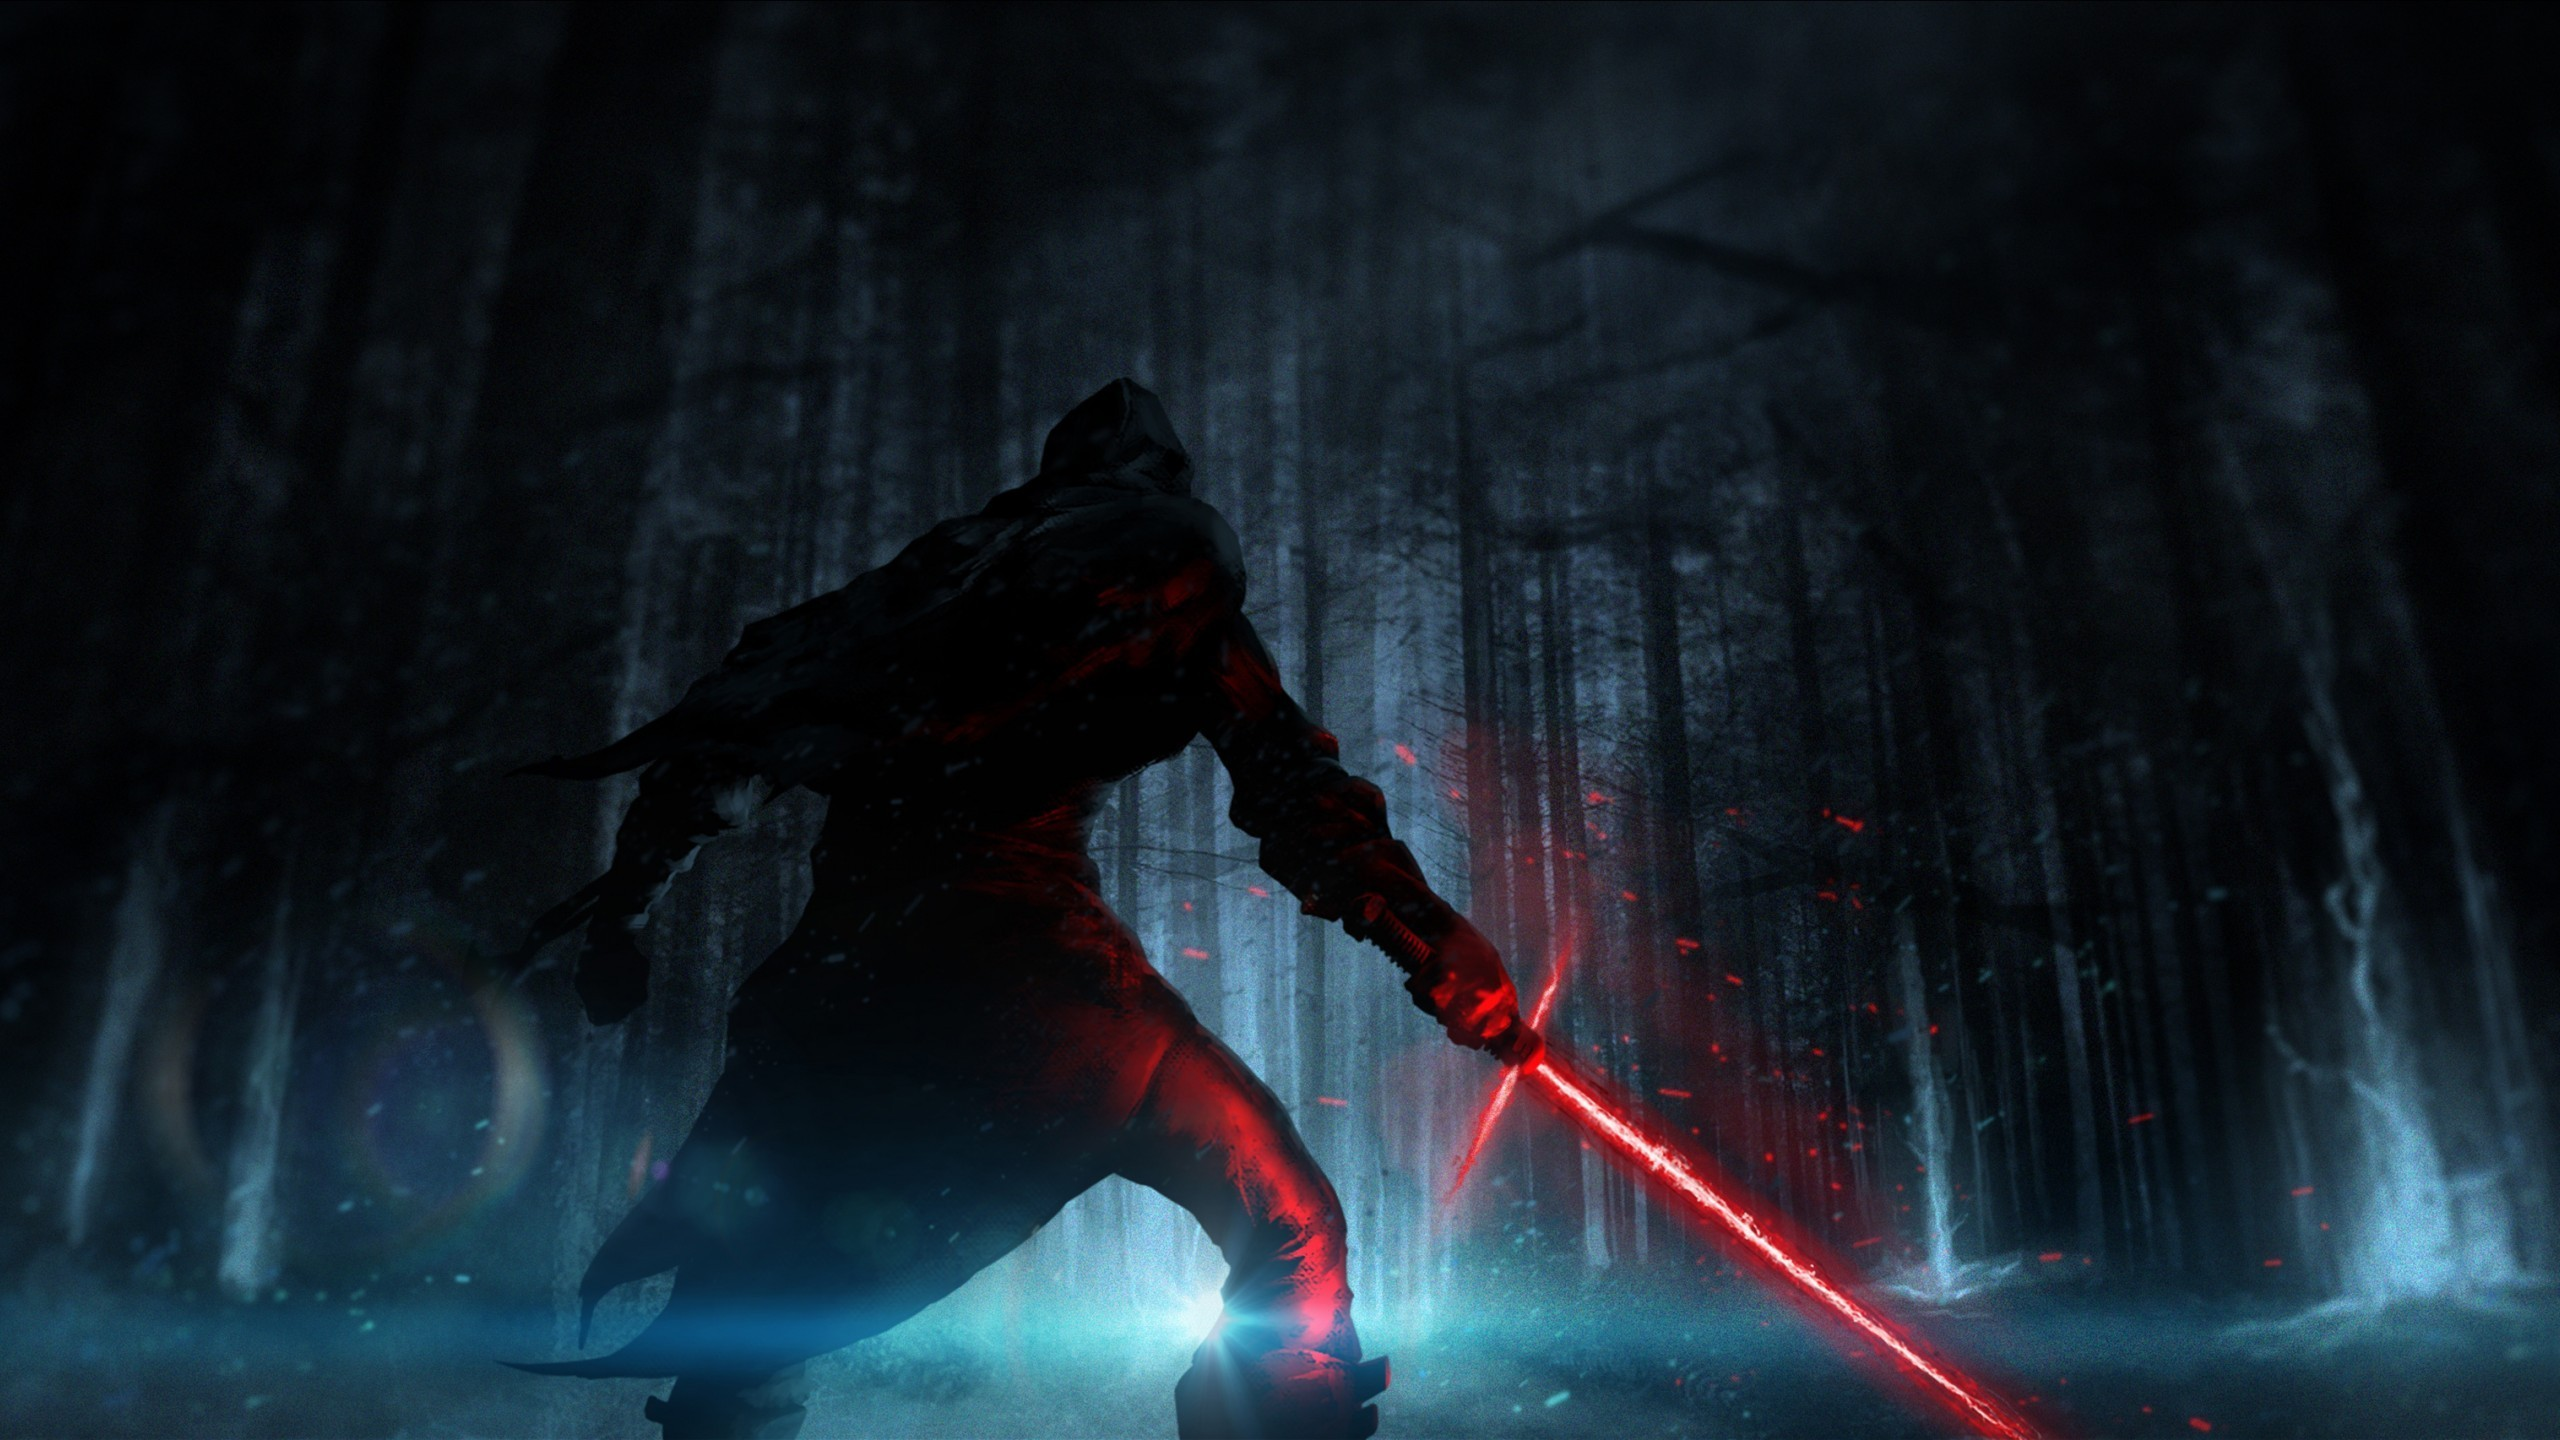 Kylo Ren Iphone Wallpaper 67 Images